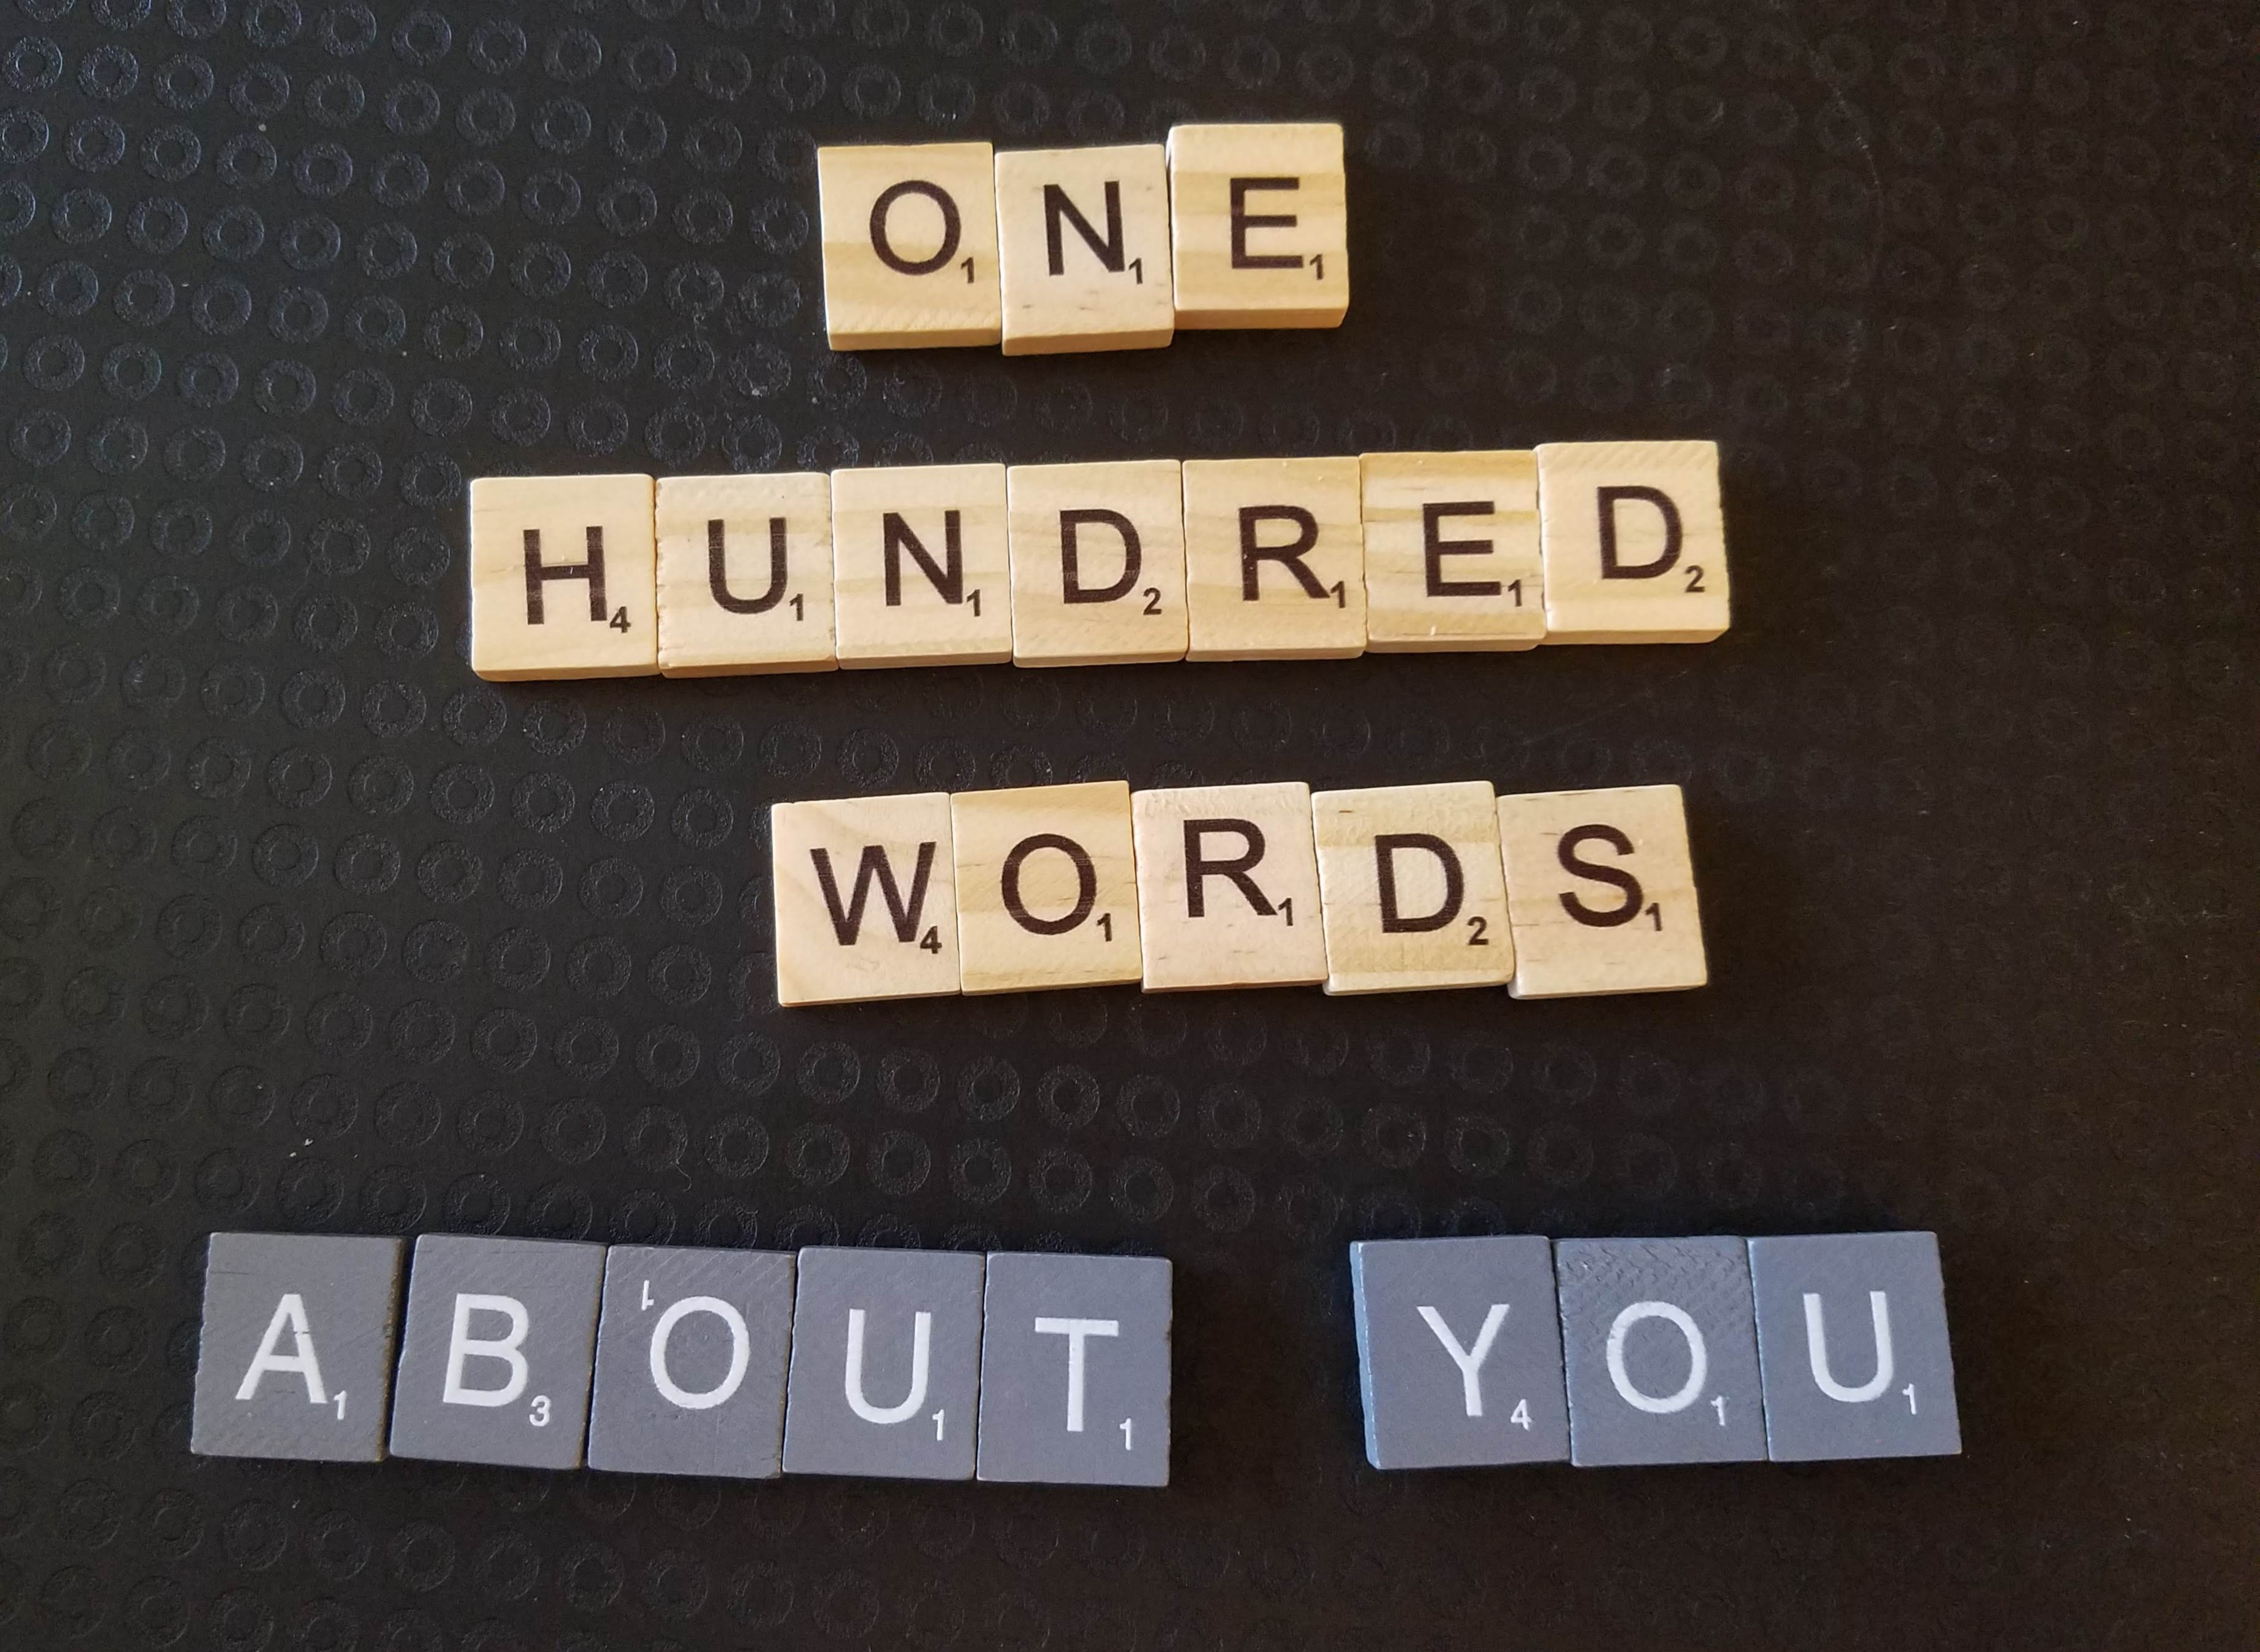 One hundred words/ About you in wooden letter tiles